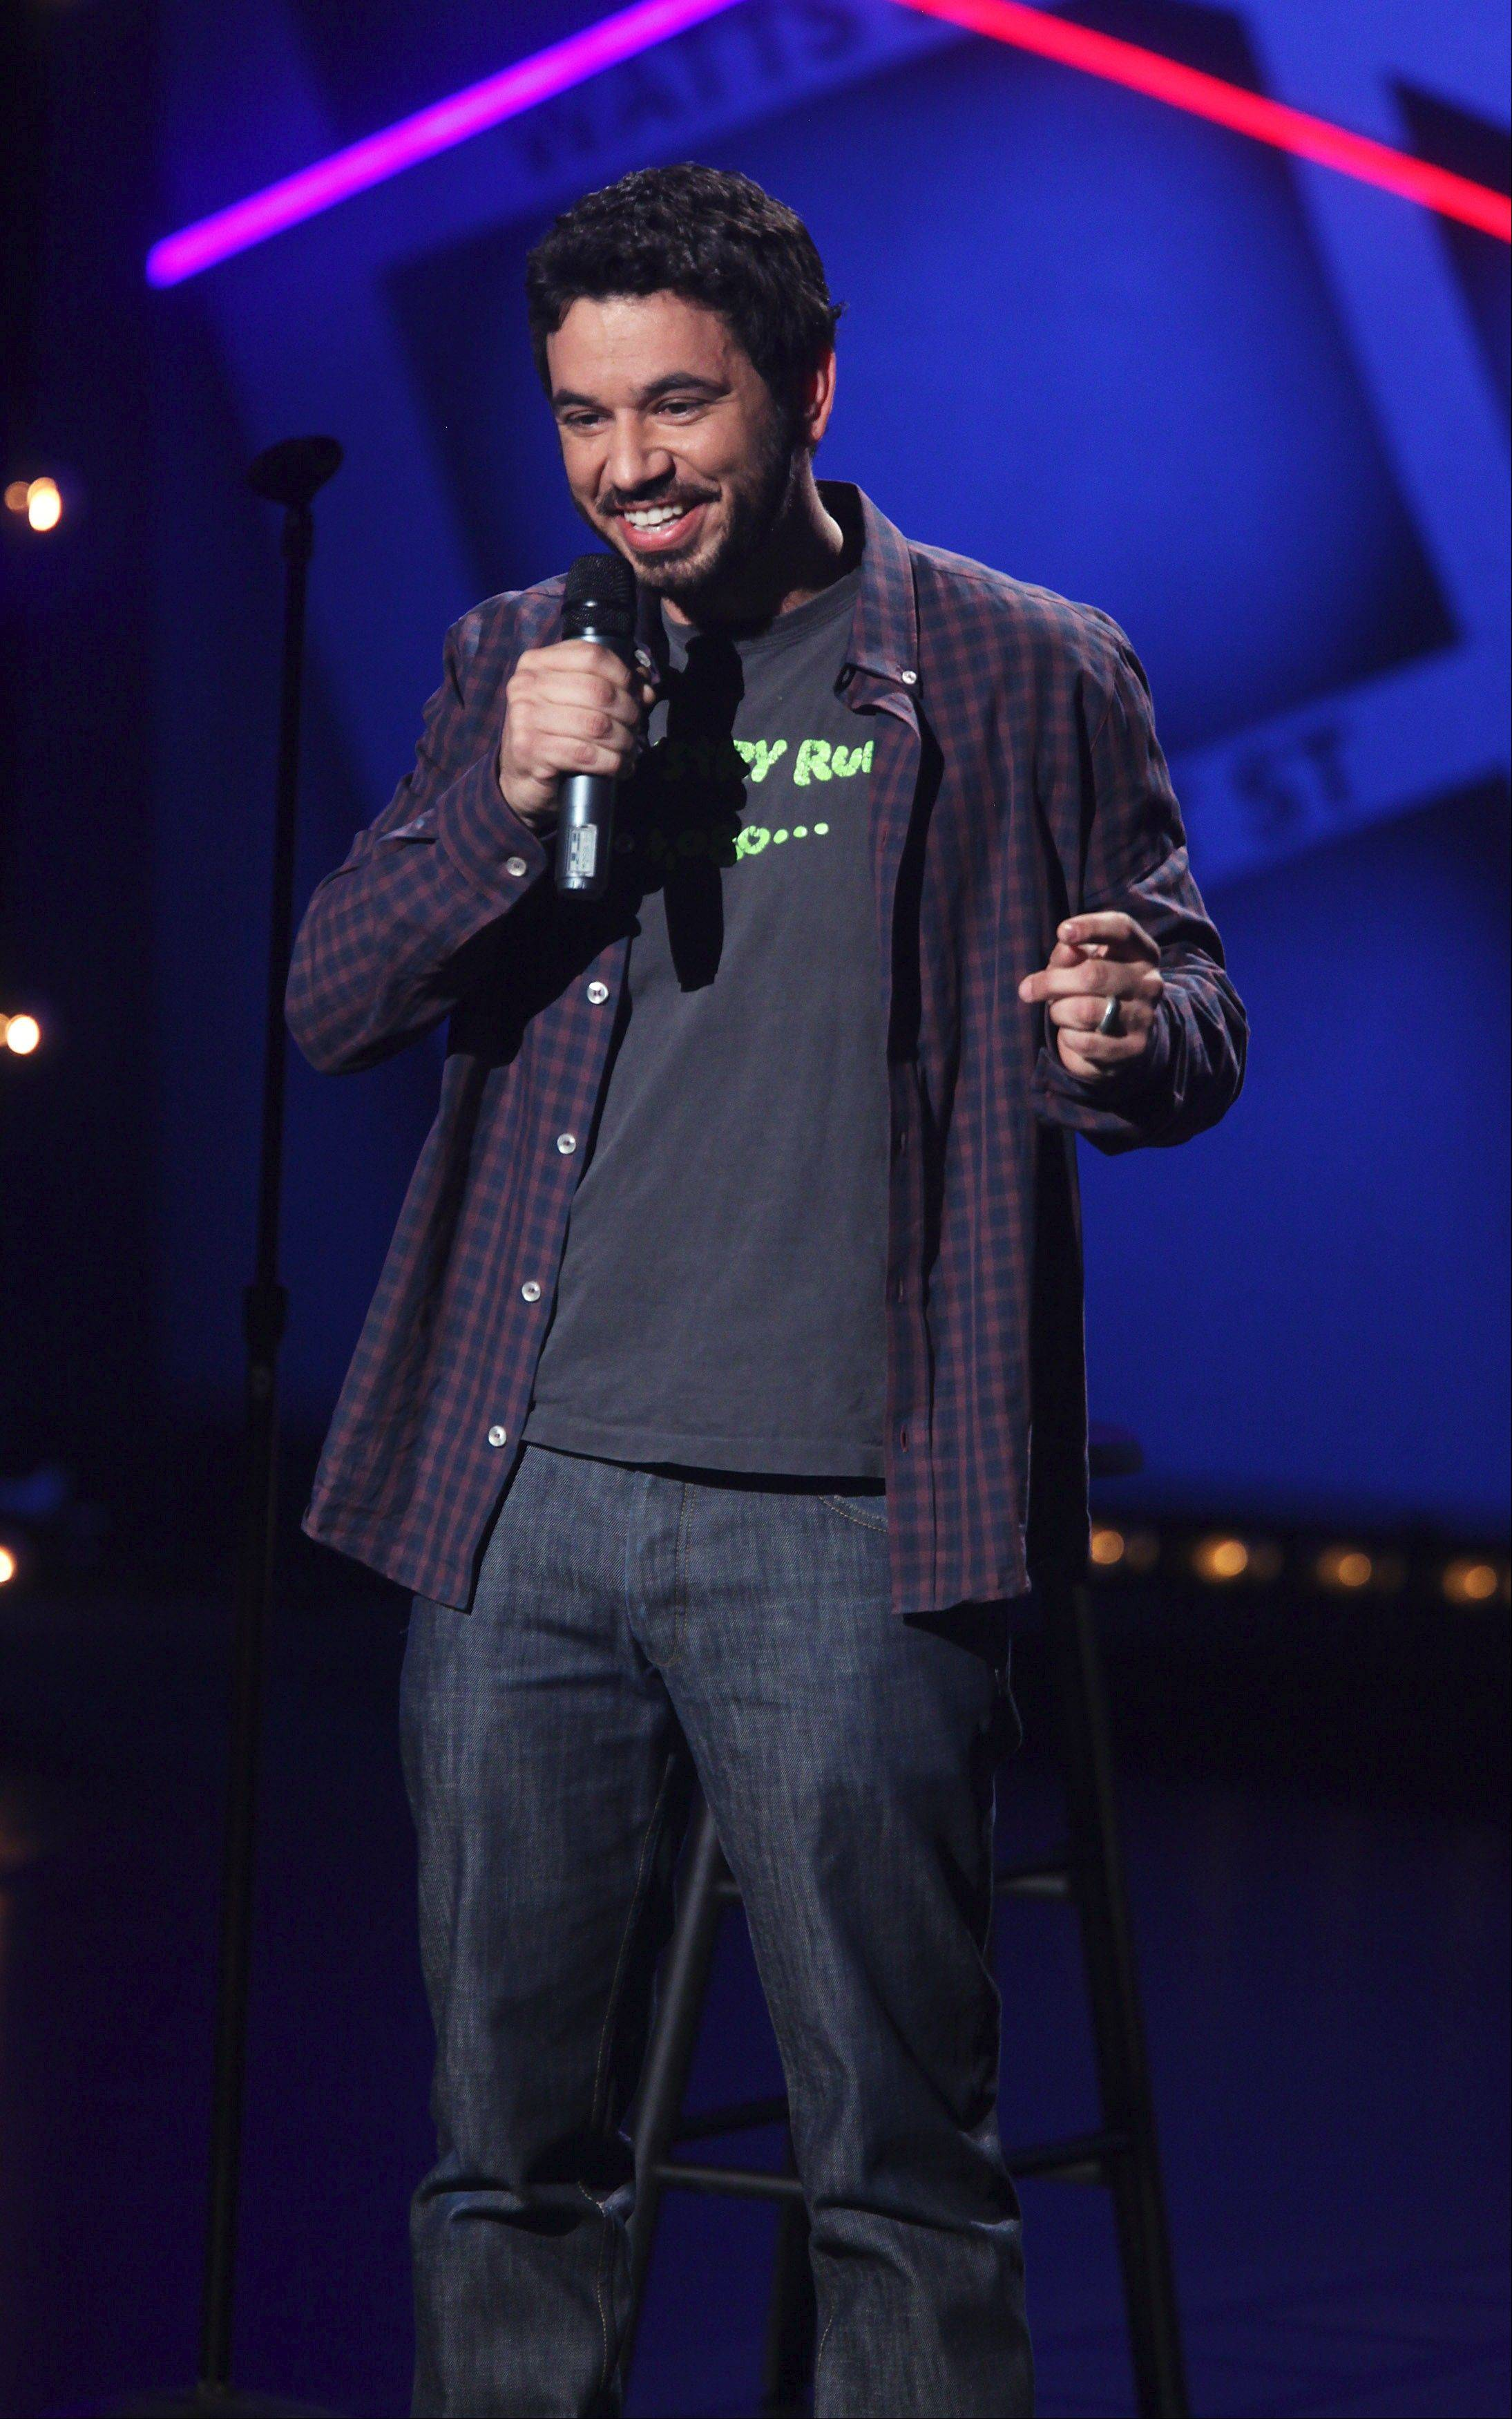 Comedian Al Madrigal is set to perform at Zanies locations in Rosemont and St. Charles.